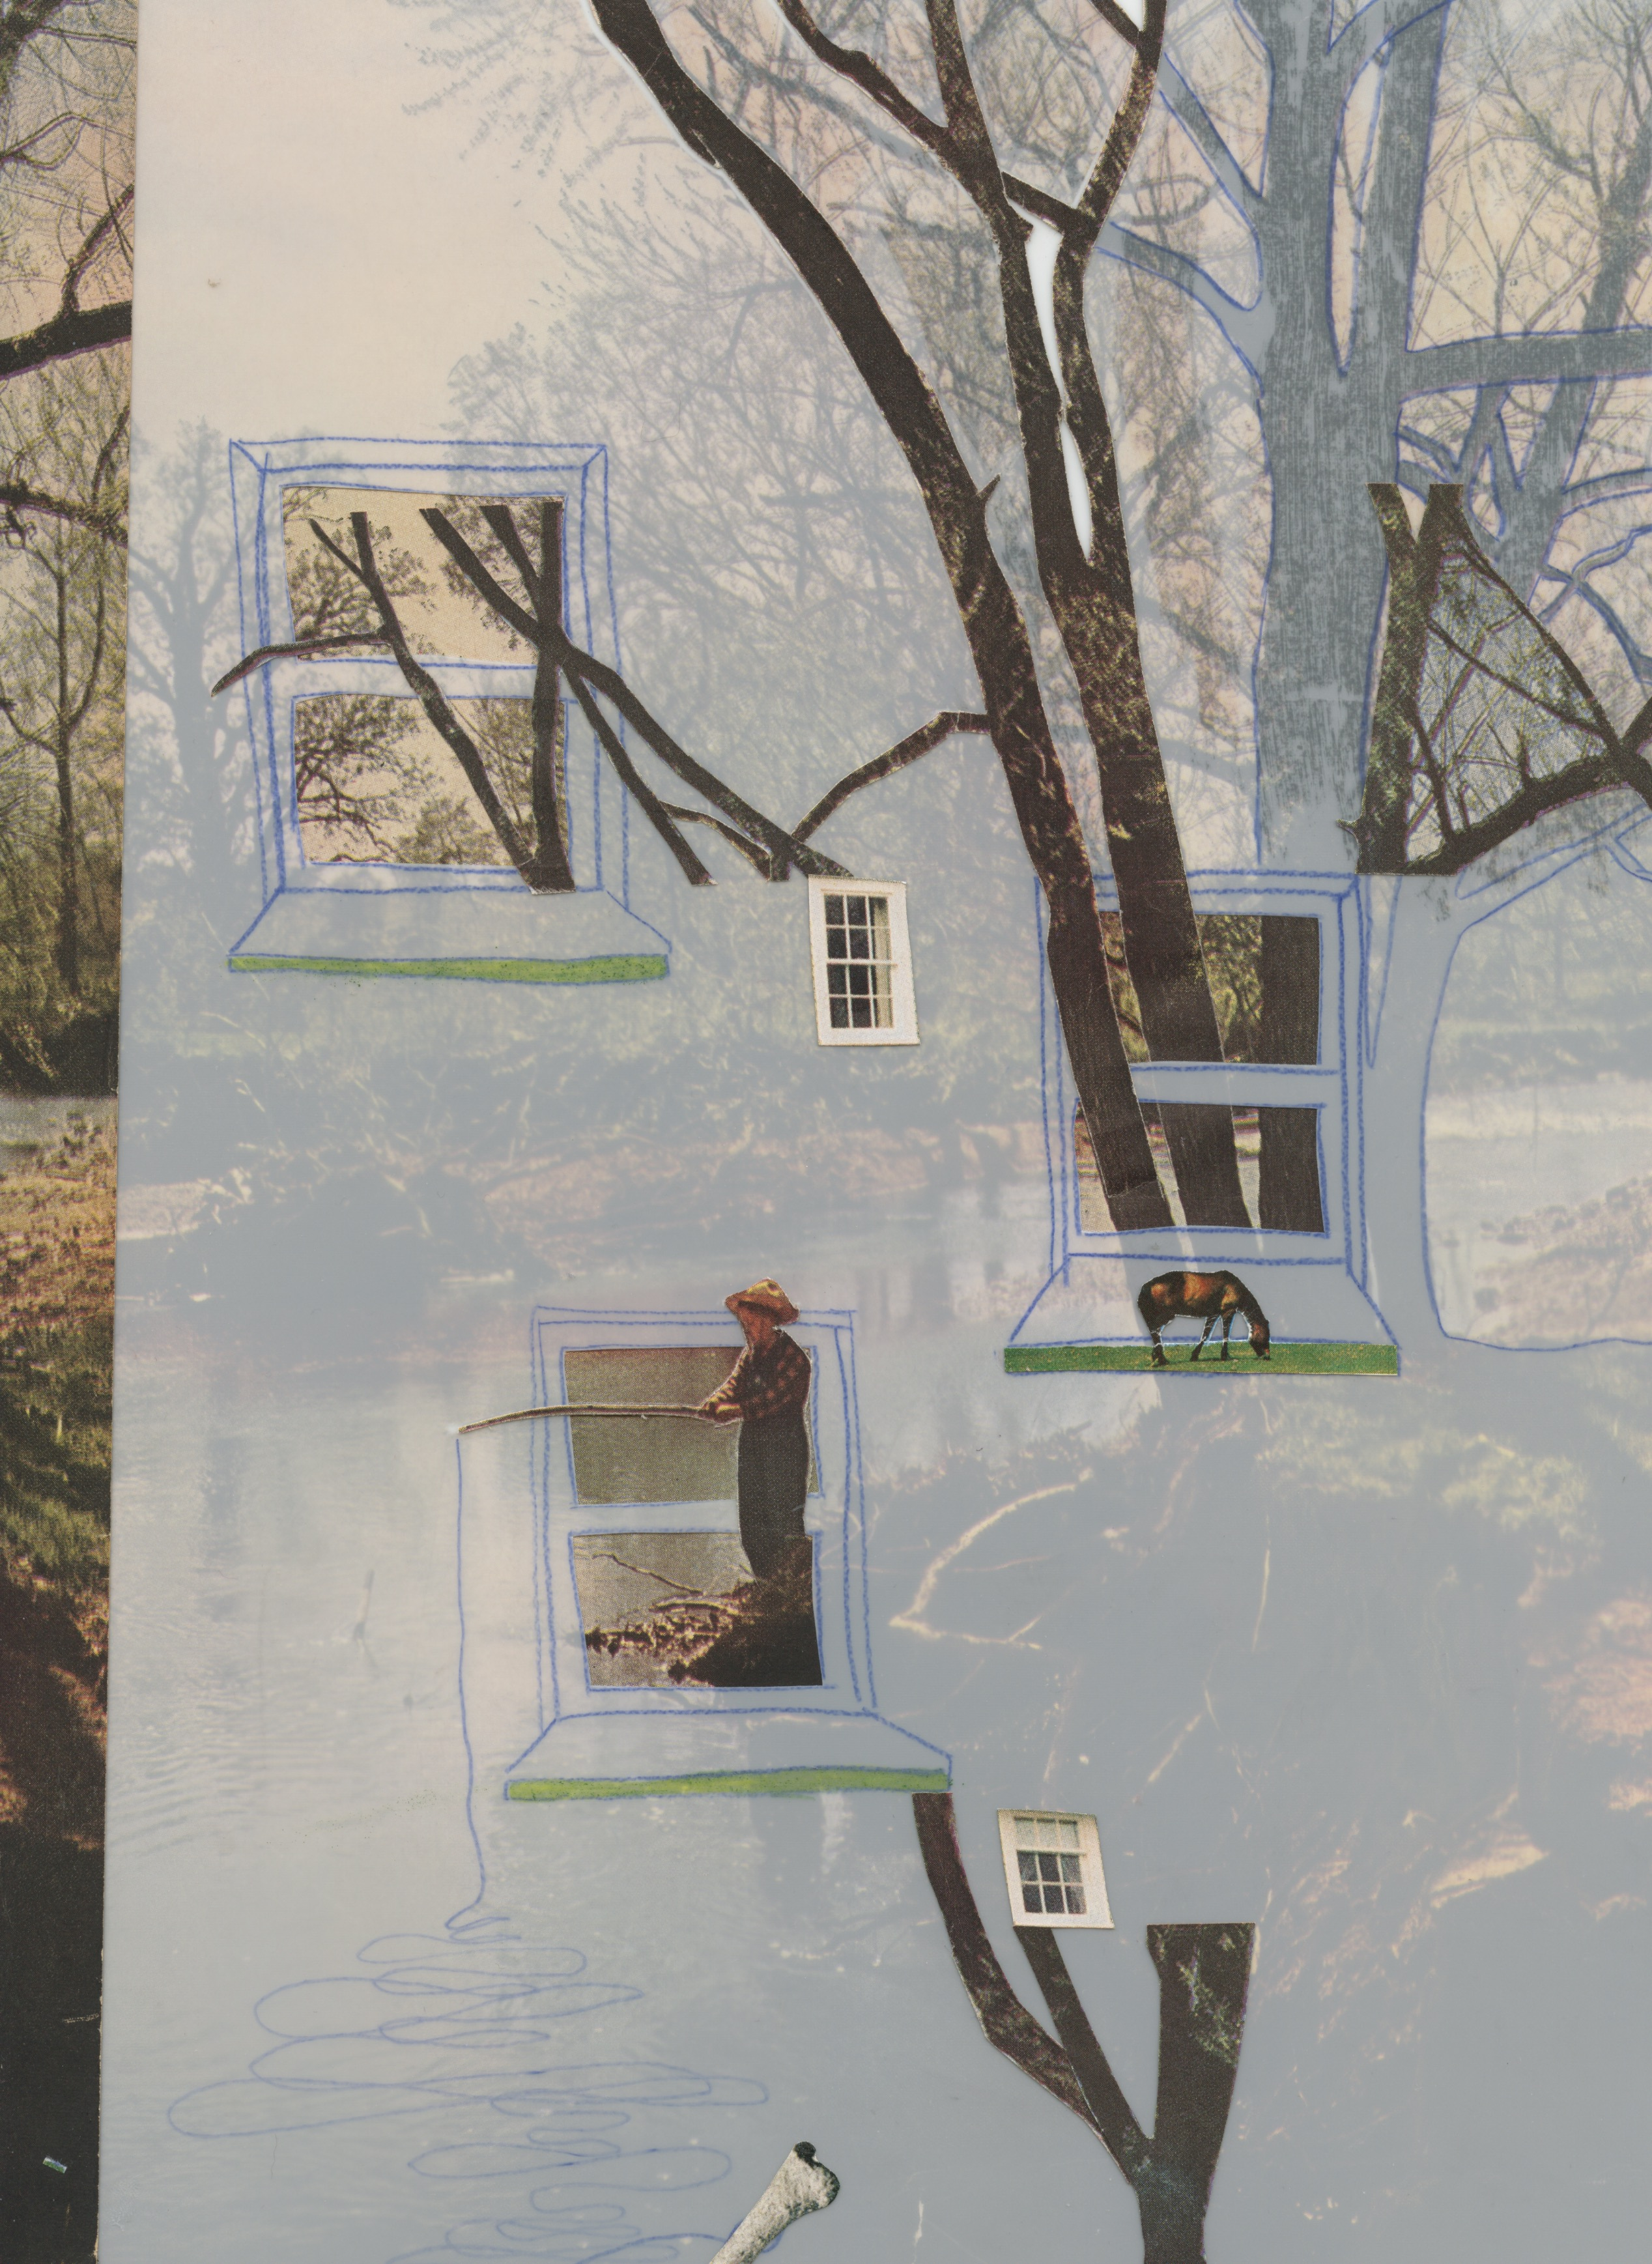 A layered photocollage of bare trees emerging from various drawn and collaged windows overlaid on a landscape image with translucent vellum